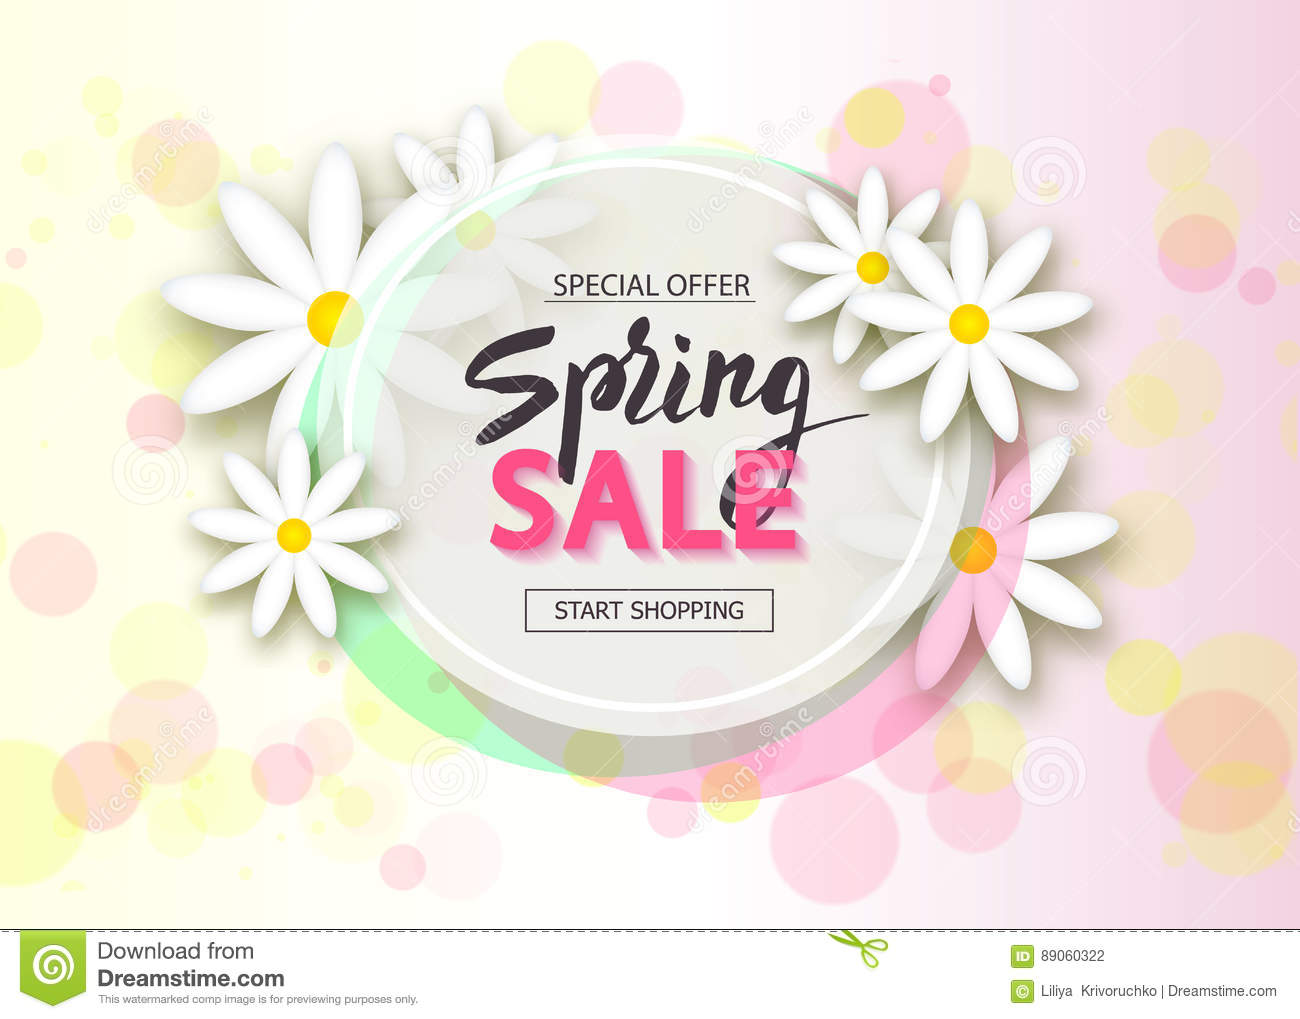 Spring Sale Background With Flowers Season Discount Banner Vector Illustration Template Wallpaper Flyers Invitation Posters Brochure